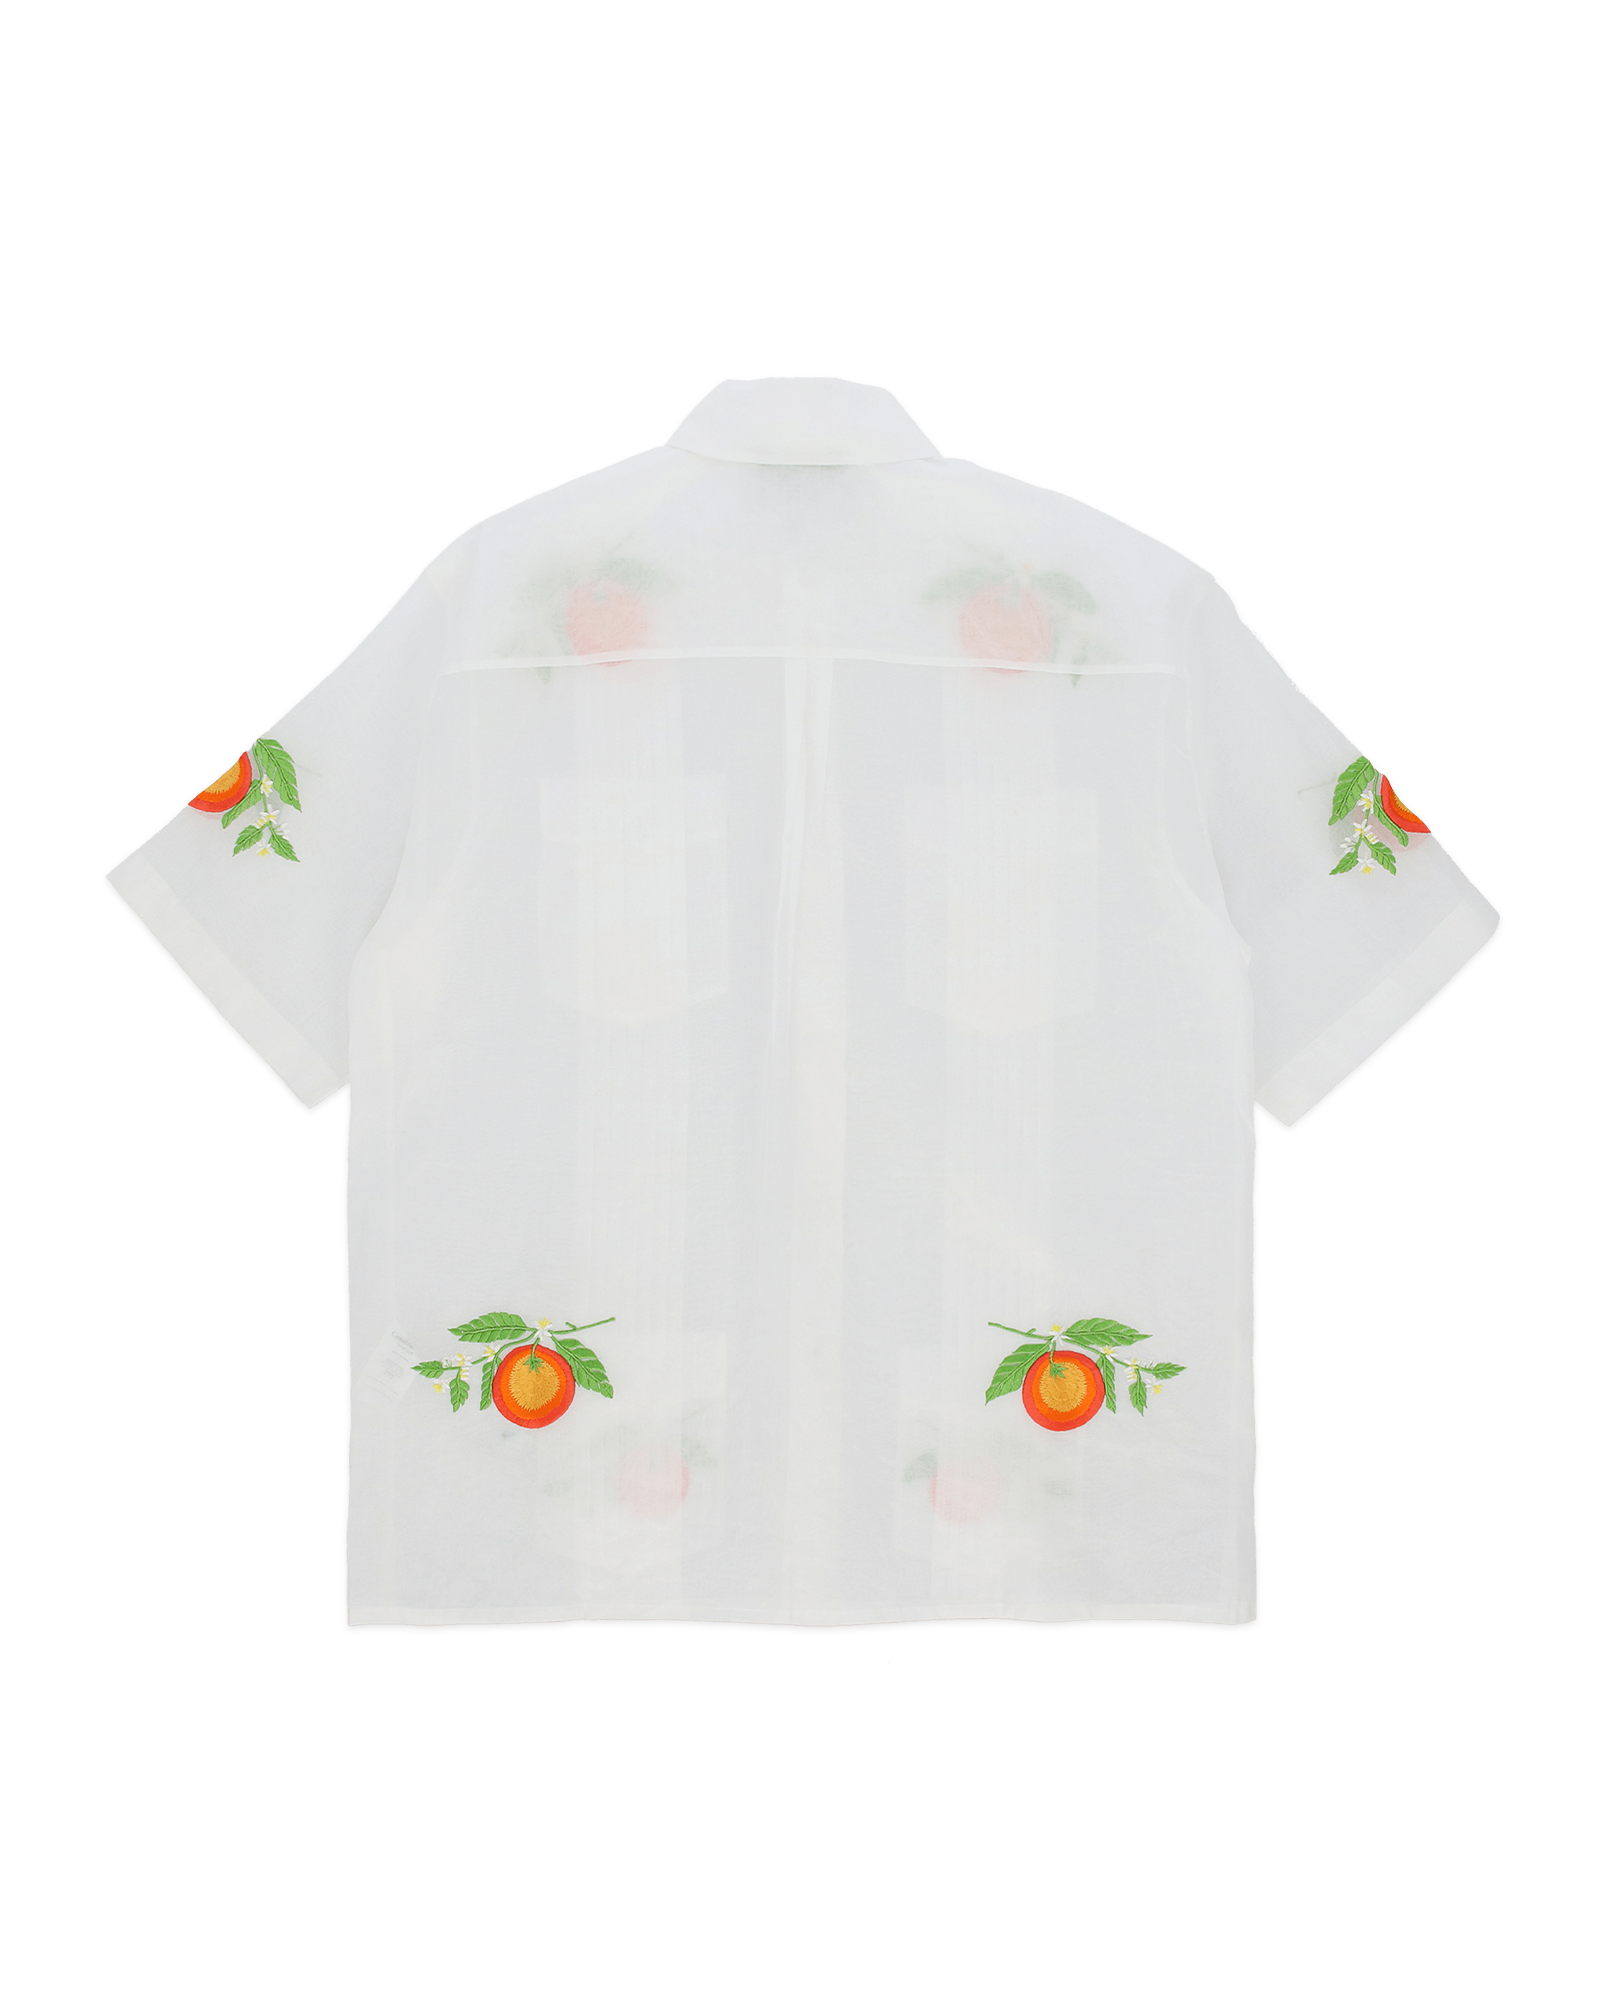 Les Oranges Blanche Cotton Shirt